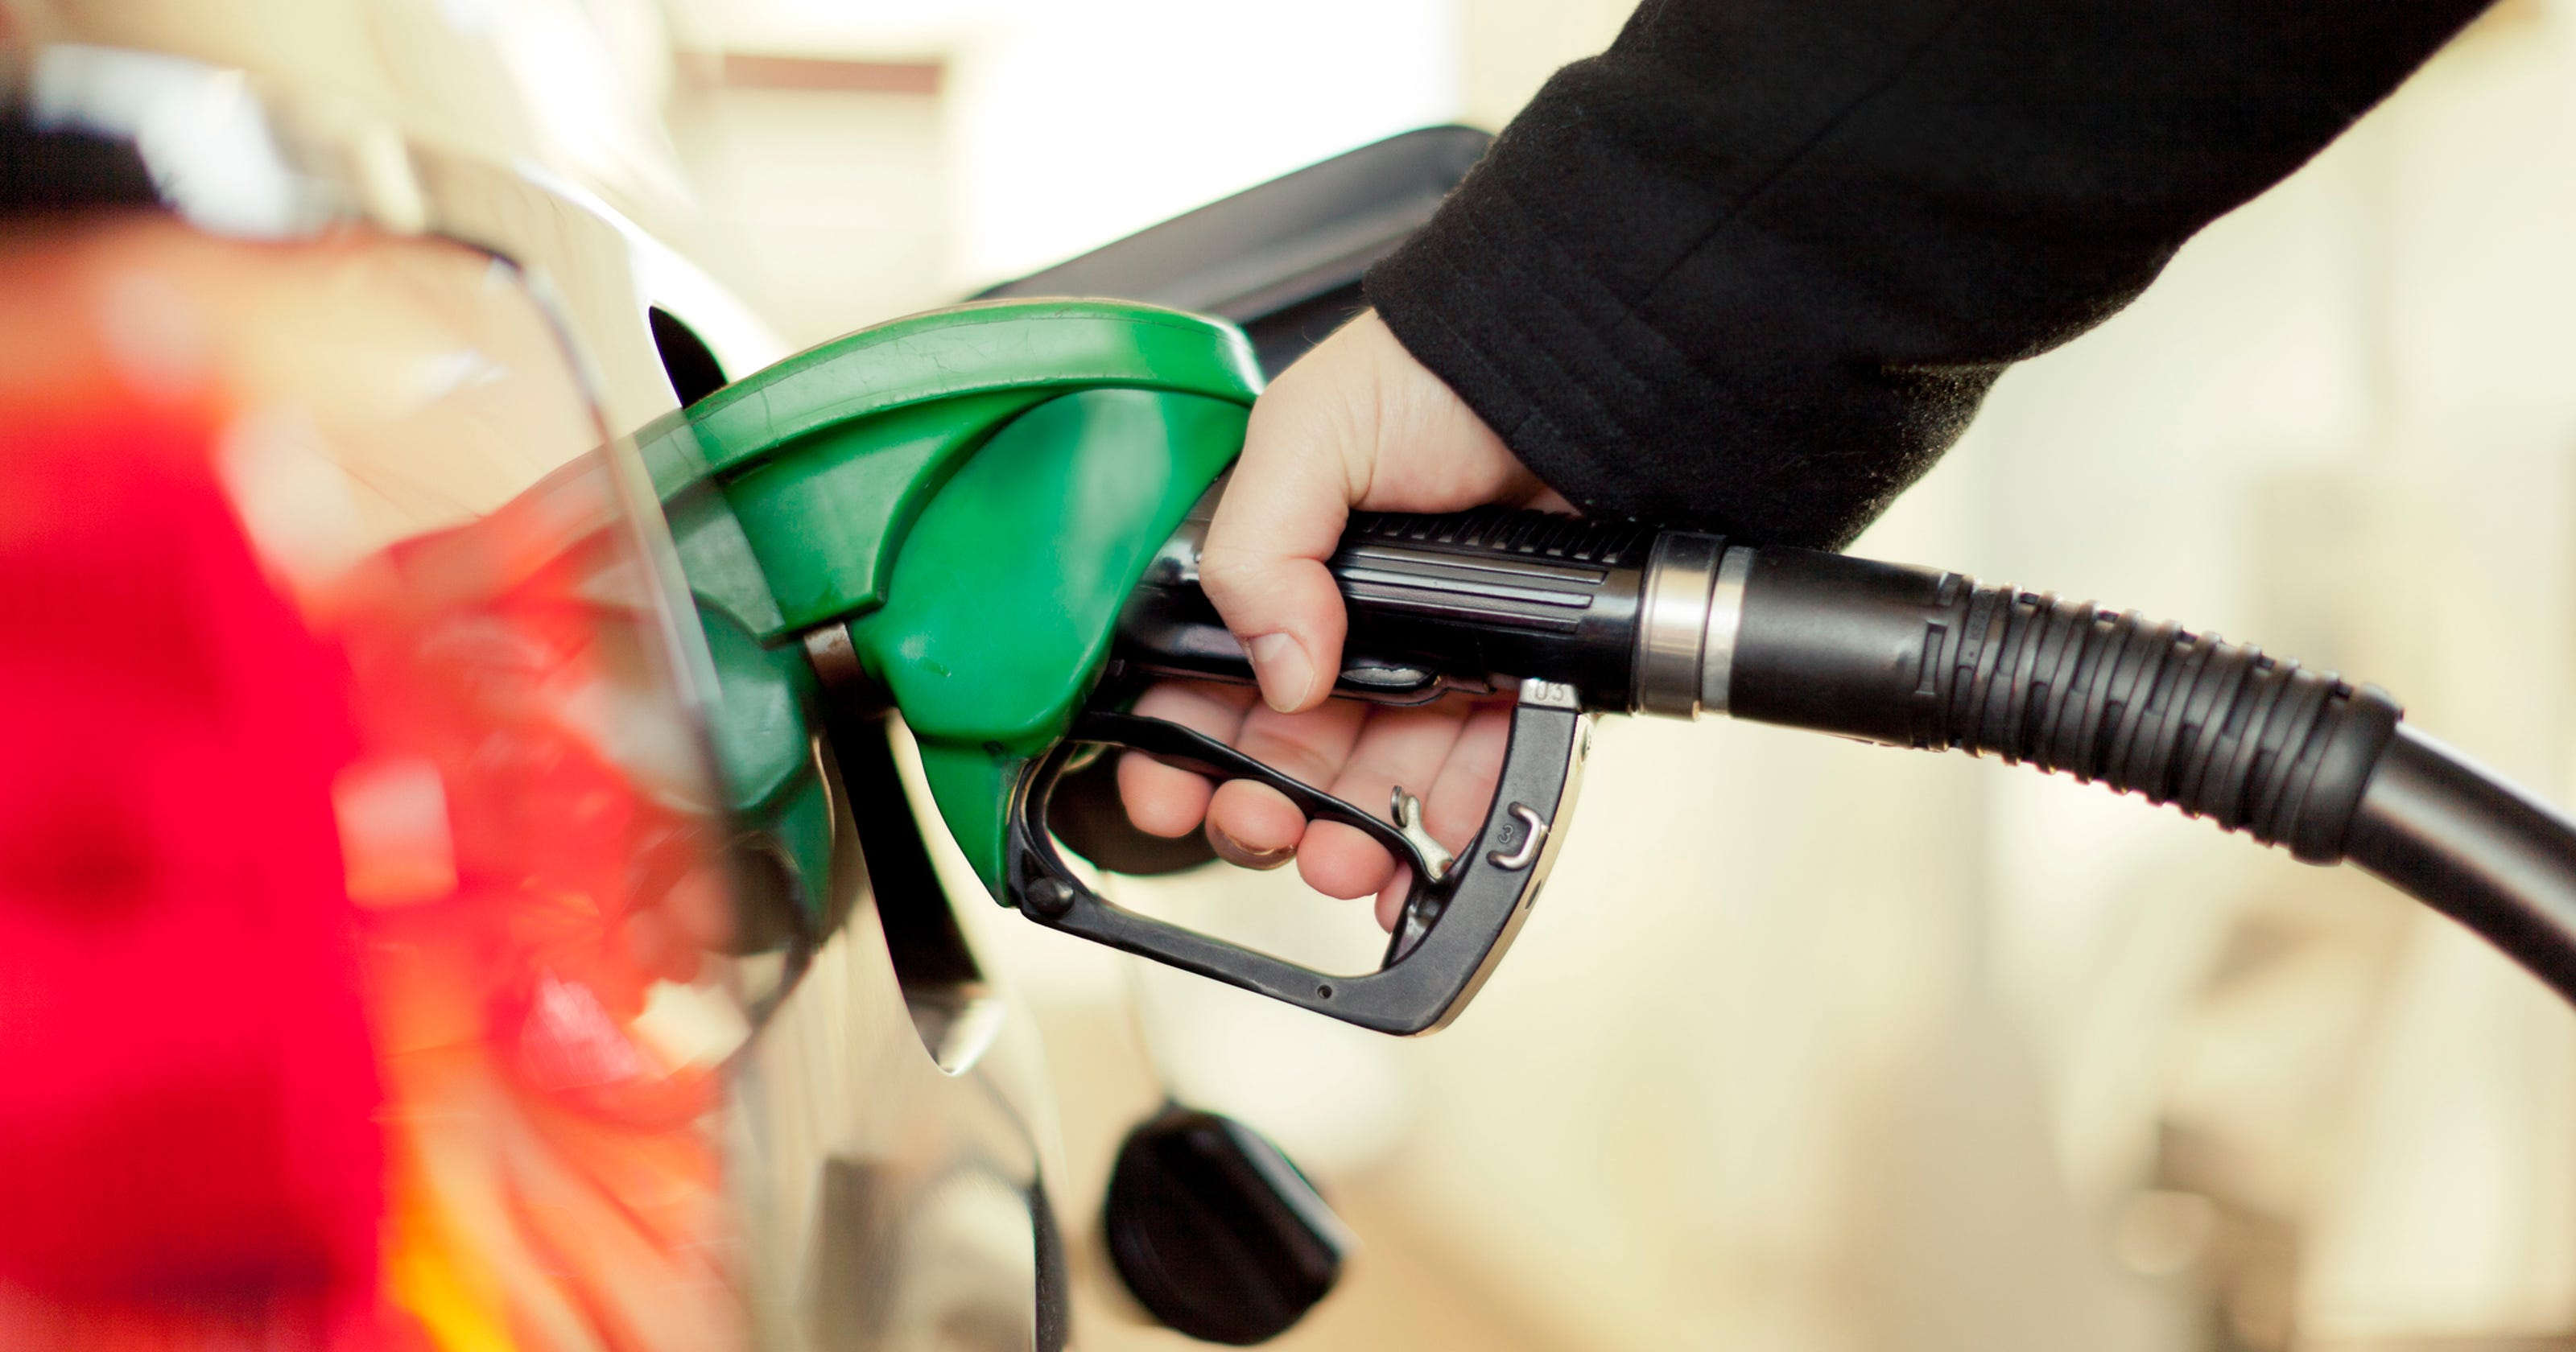 Aaa Naples Fl >> Aaa Gas Prices On The Rise This Spring